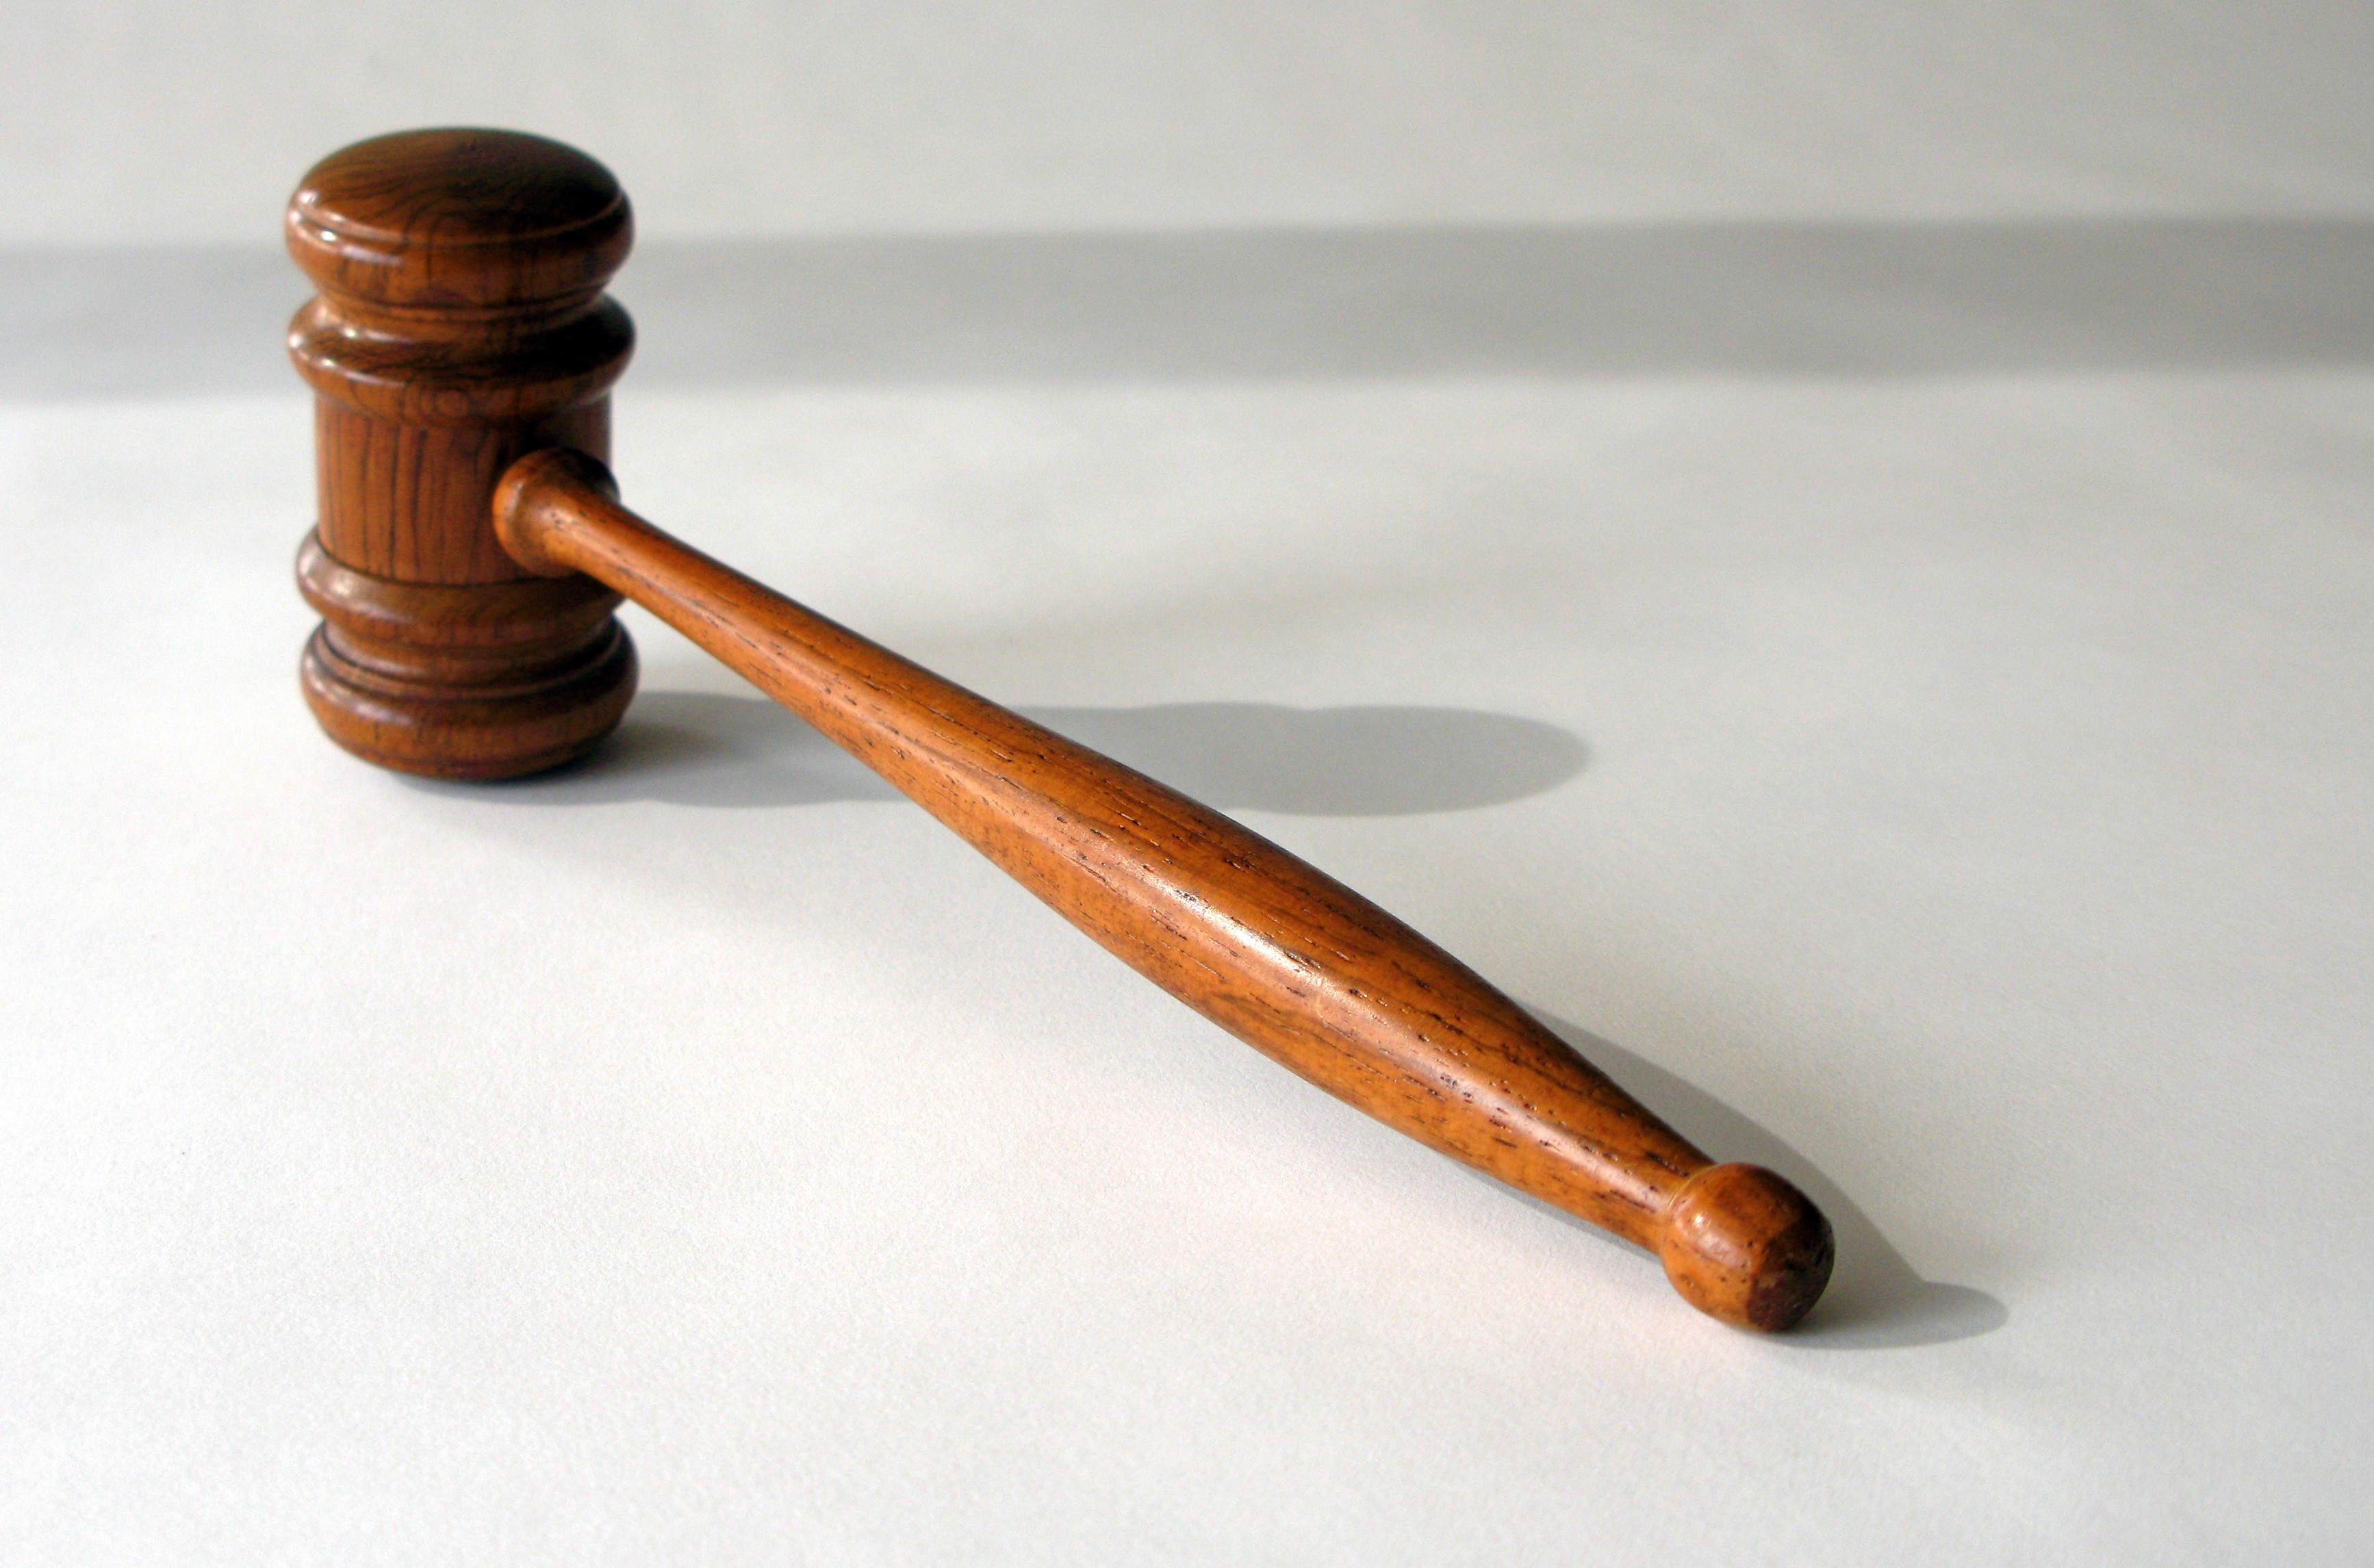 Jury Instructions Gavel for Personal Injury